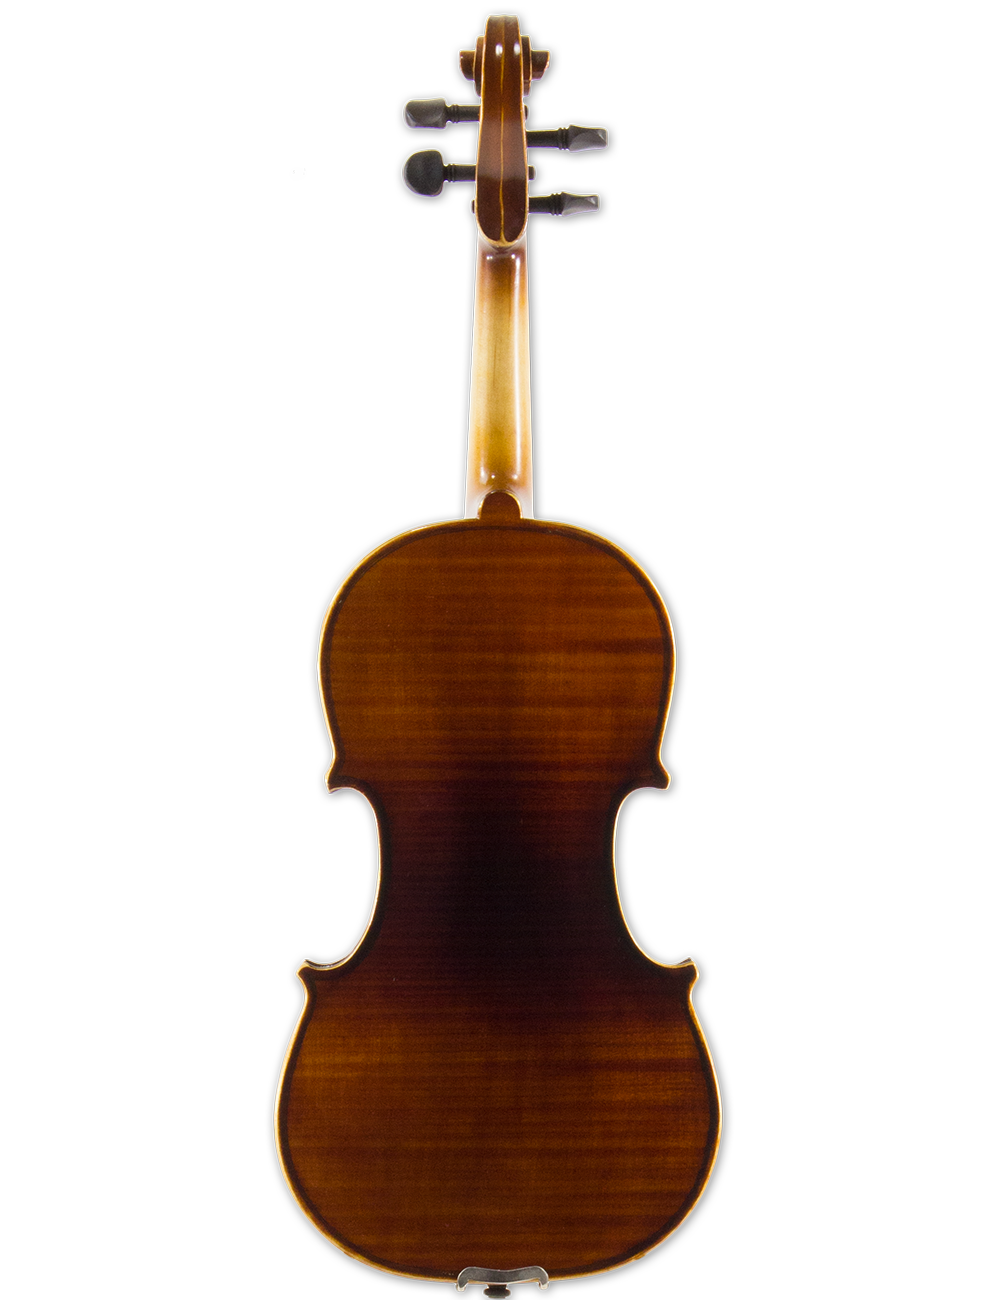 BEGINNERS VIOLIN OUTFIT, Tambovsky Strings, Anno 2016, size All